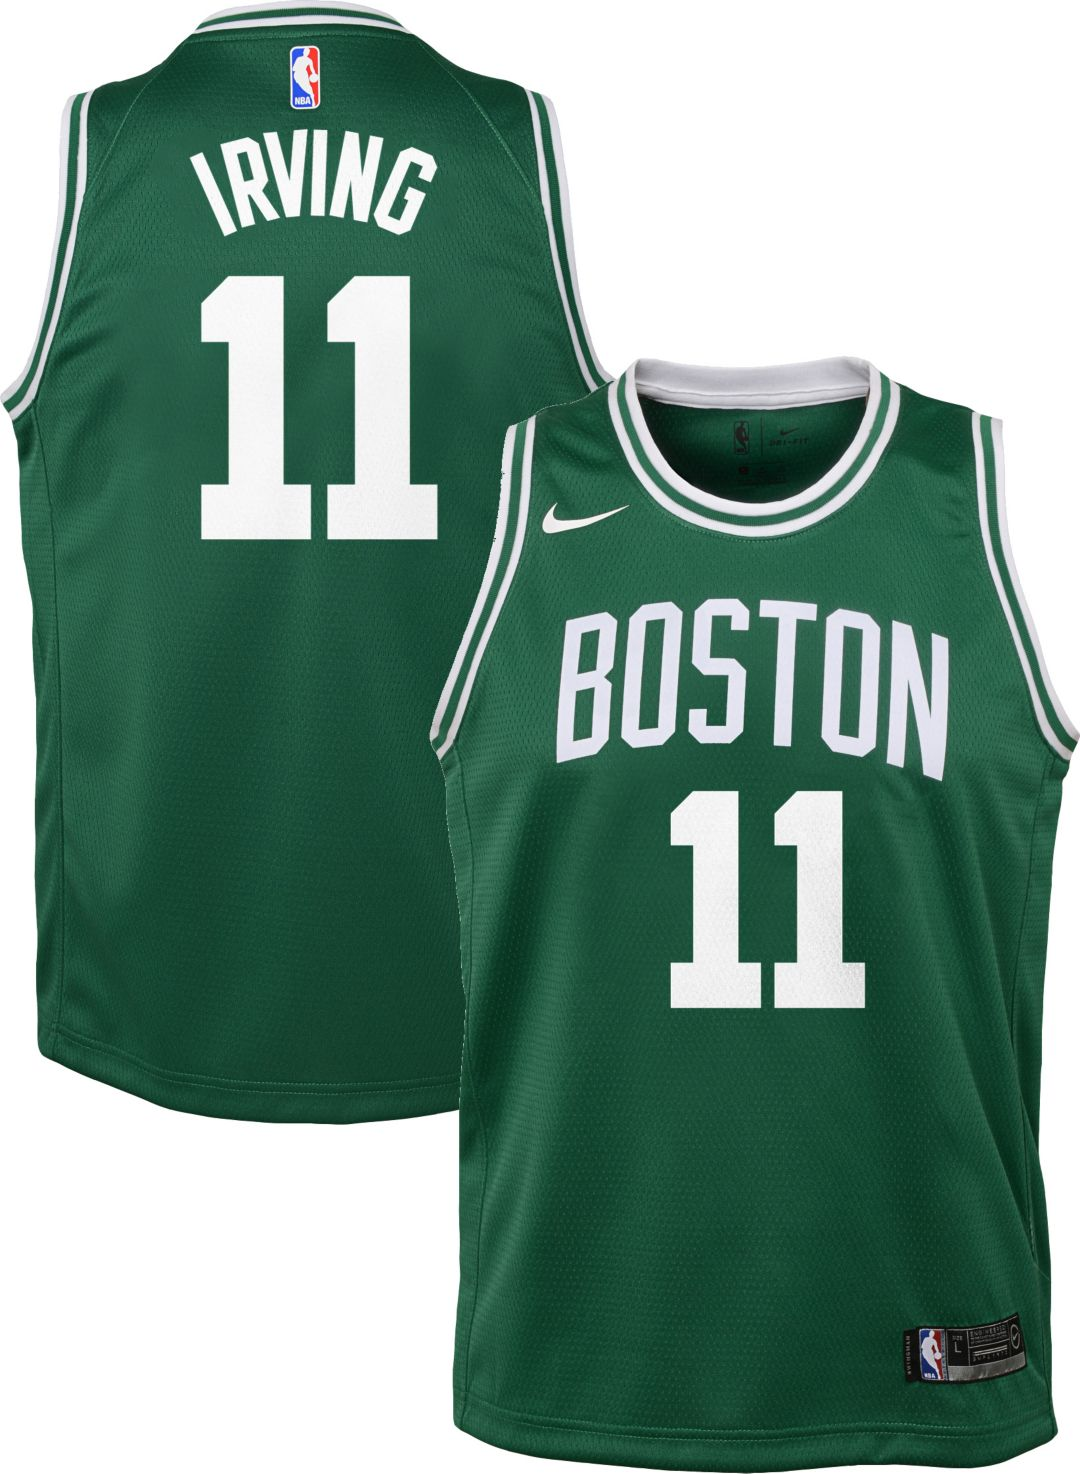 finest selection 7d91e 5e854 Nike Youth Boston Celtics Kyrie Irving #11 Kelly Green Dri-FIT Swingman  Jersey